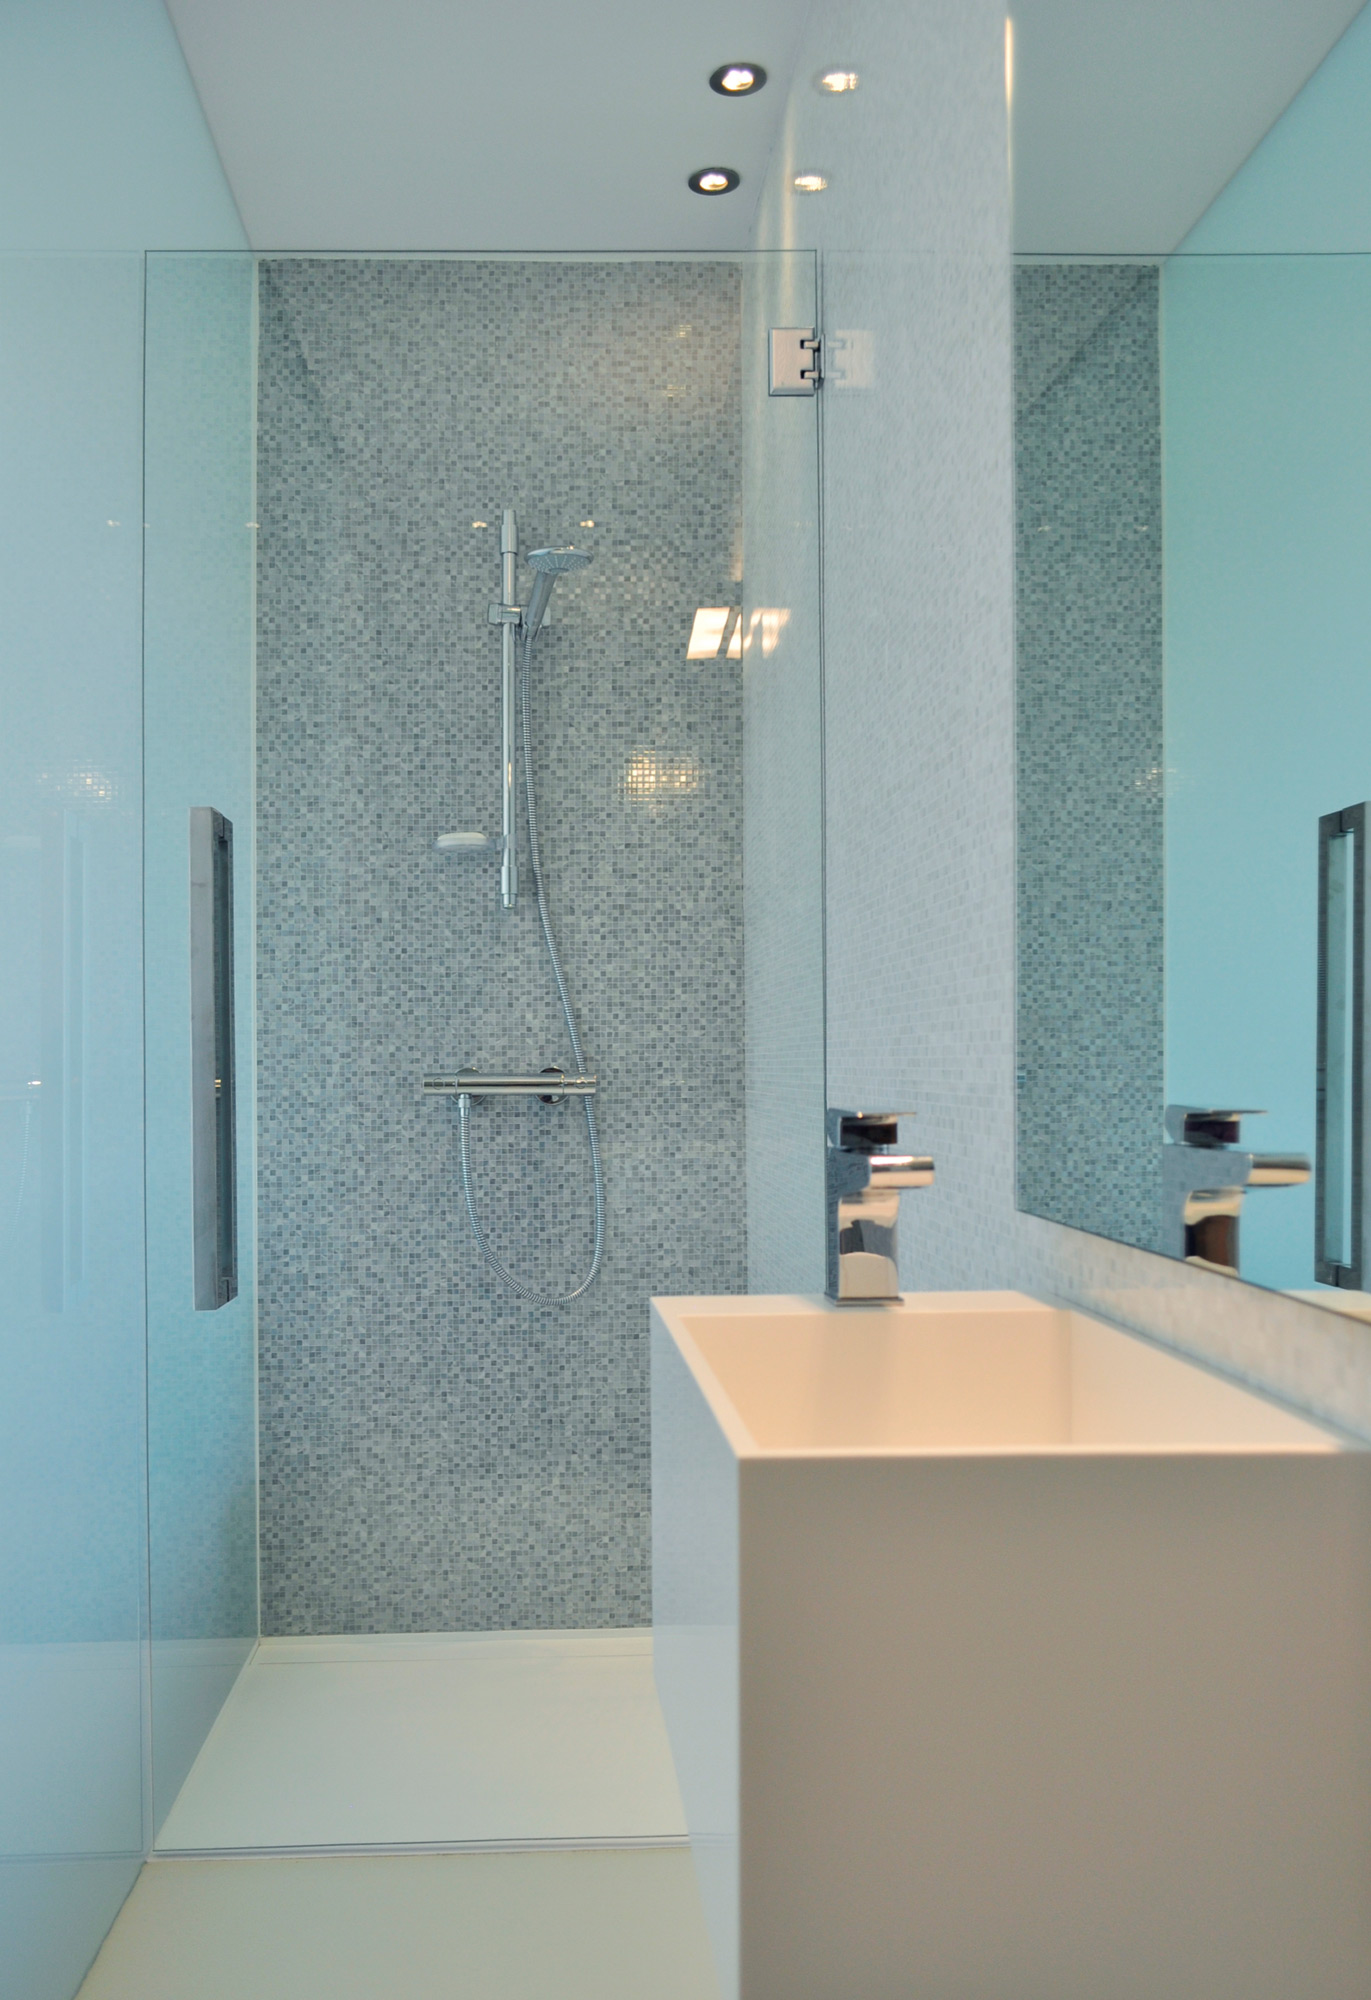 Fine materials for a luxury bathroom rardo architects - Arquitecto sitges ...